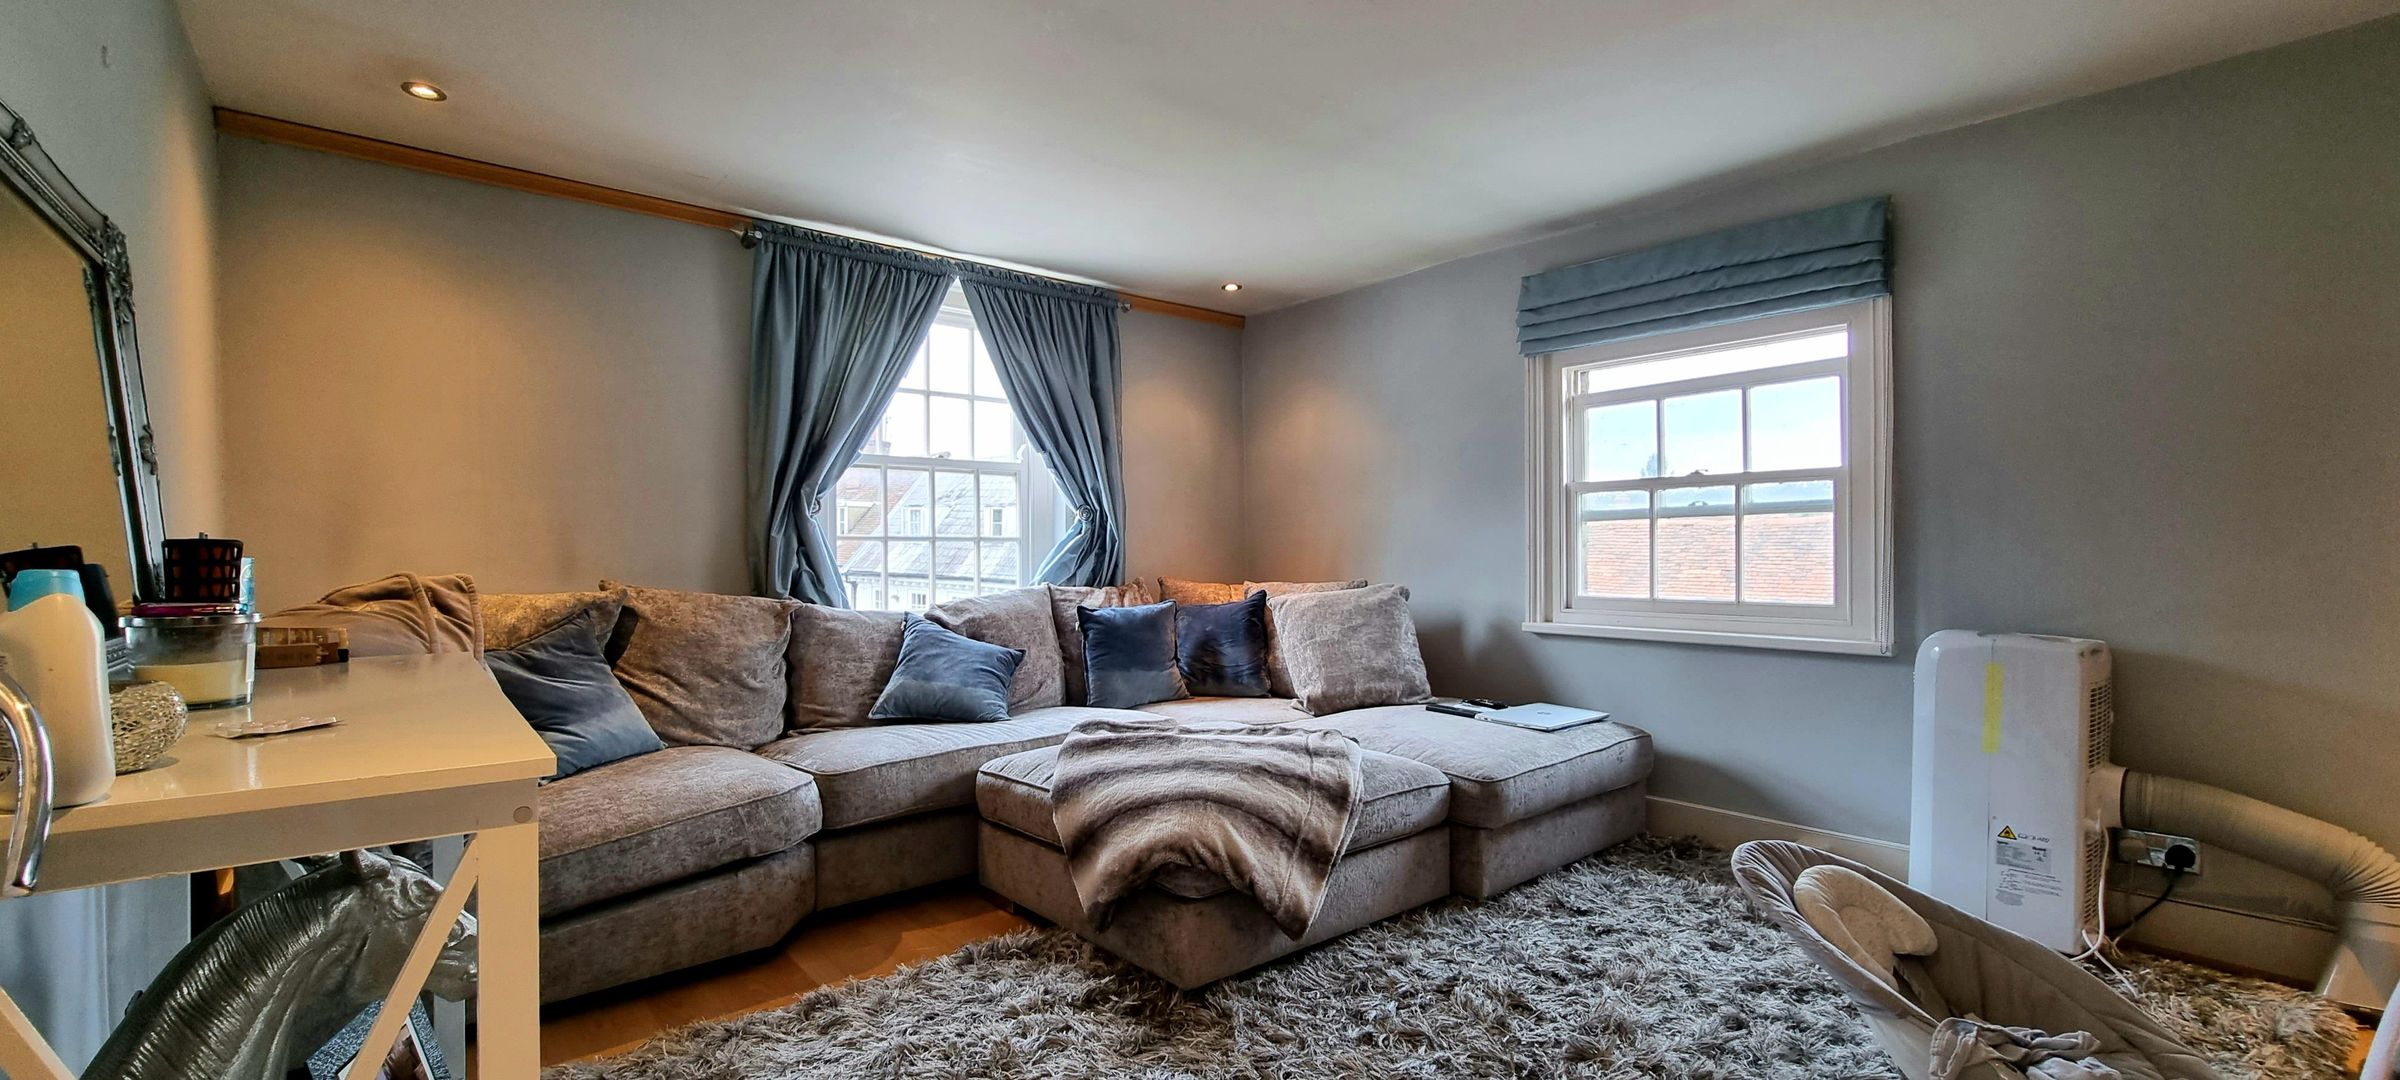 Property photo 1 of 8. Living Room